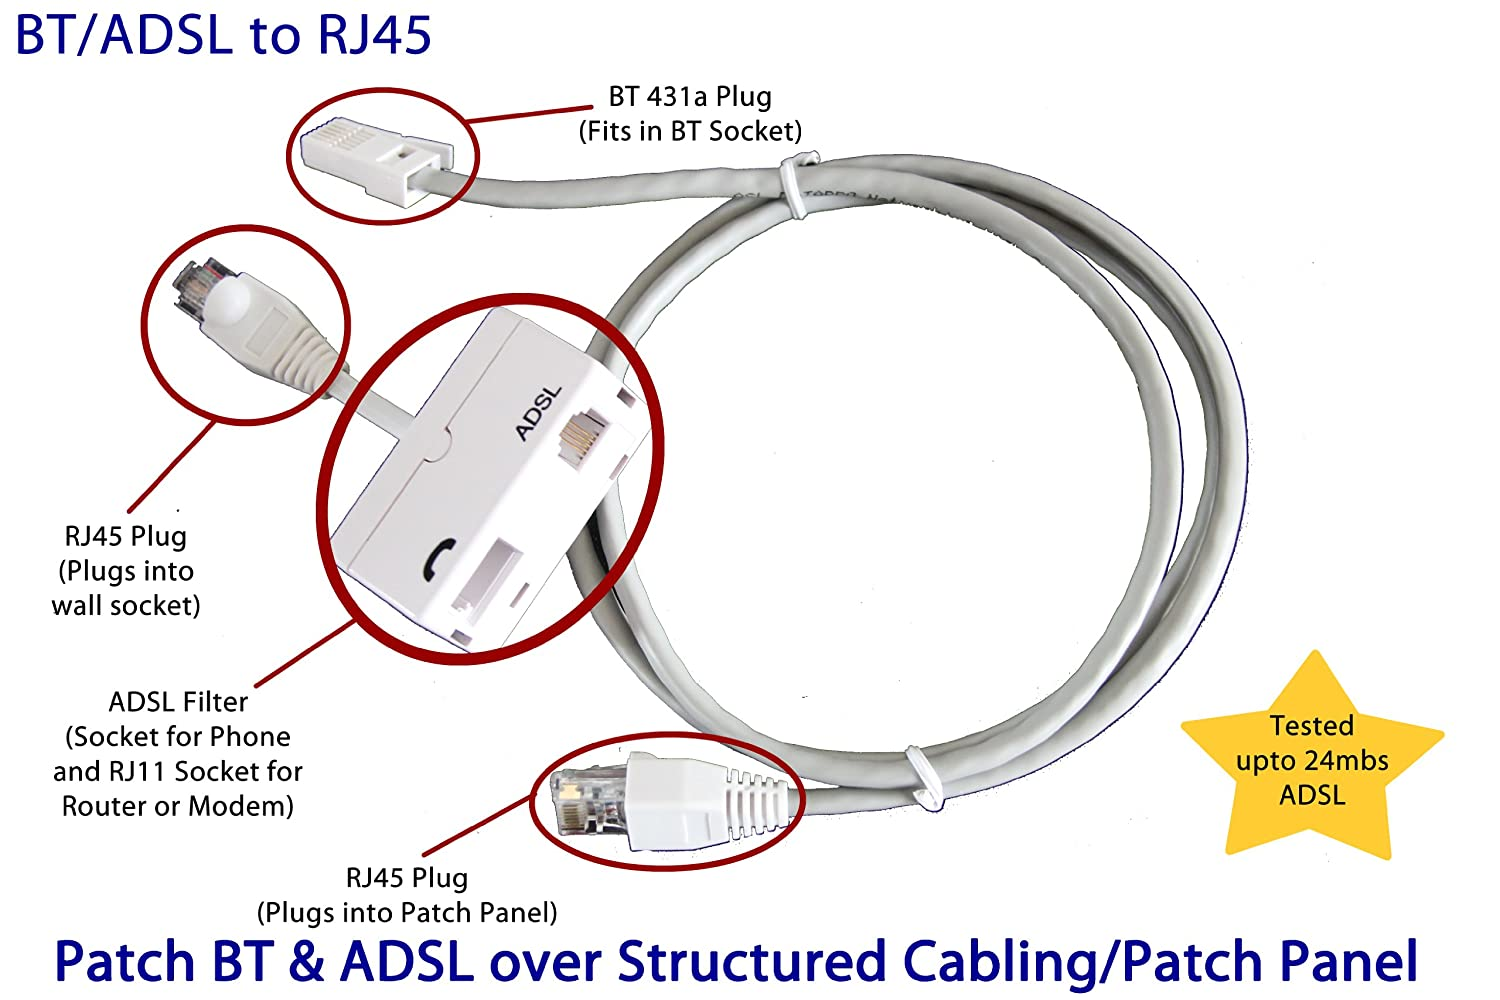 PCSL Brand - BT Telephone Master with ADSL to RJ45 Patch Cable and ADSL Microfitler Adaptor - Cable Length 0.5m - This allows you patch a BT Master with ADSL over Structured Cabling.